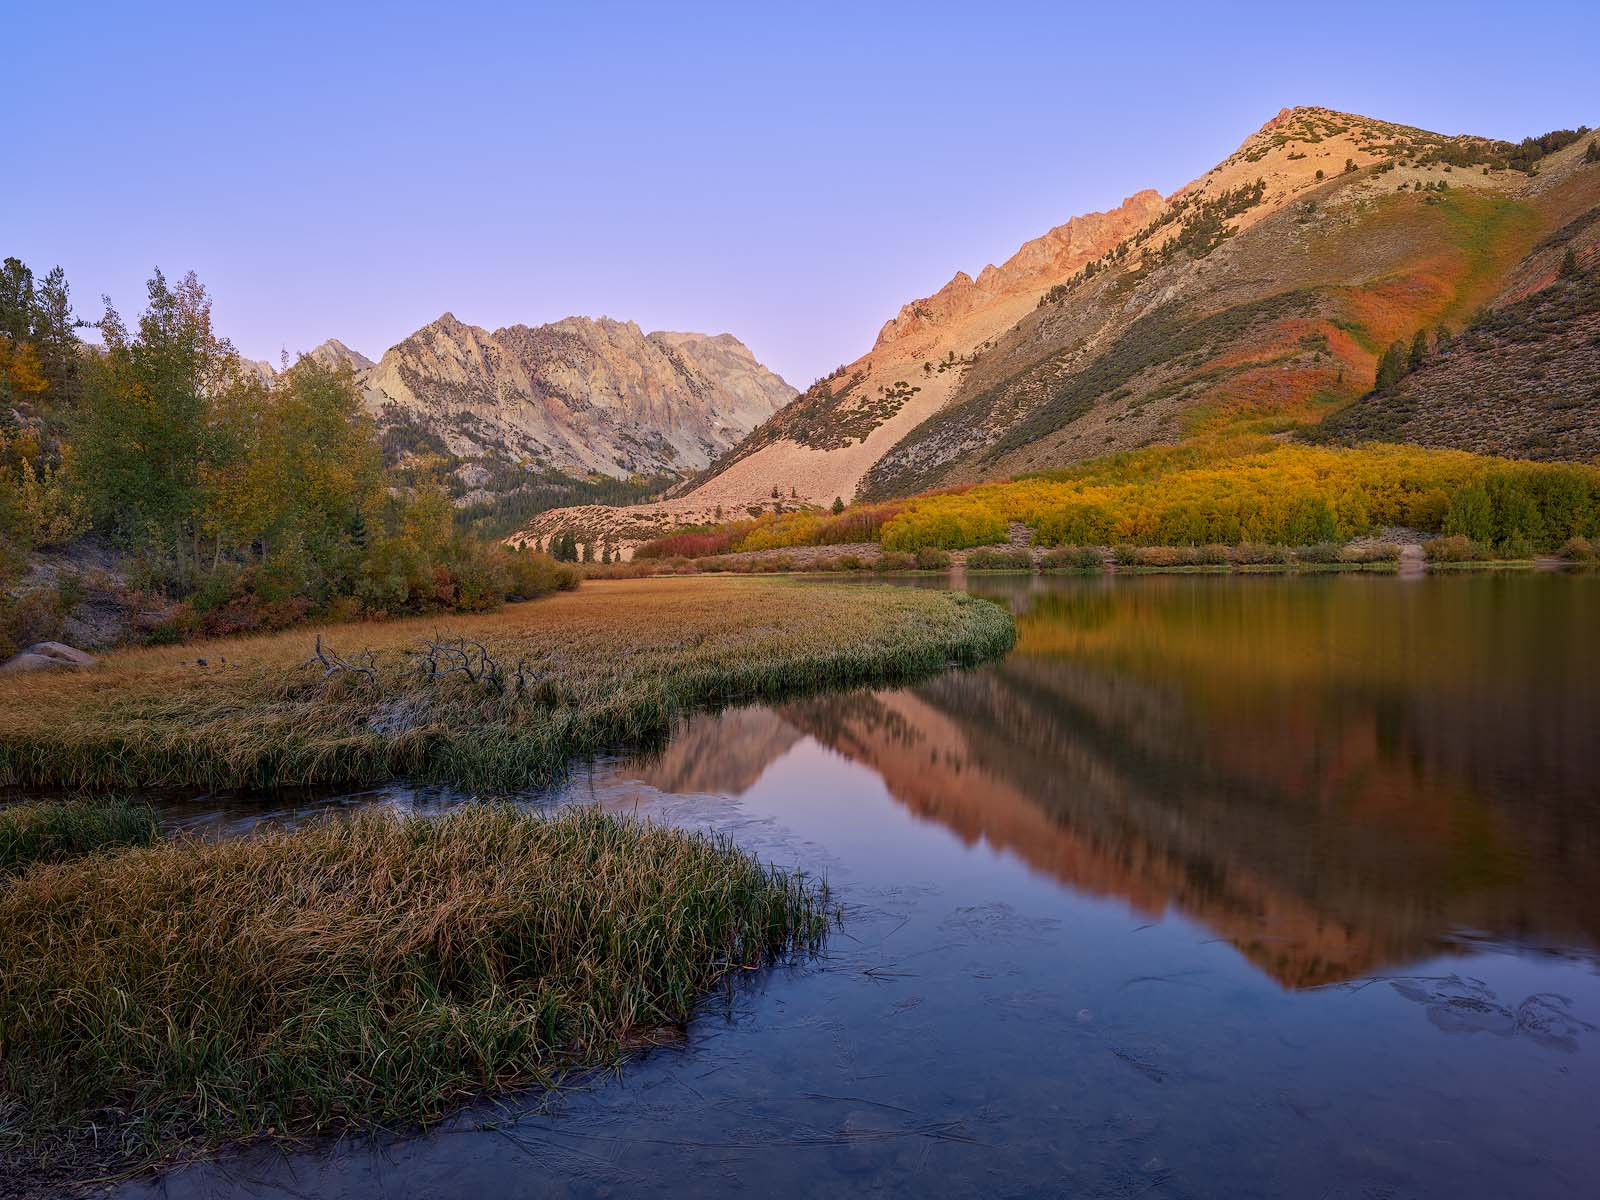 WORLD REGIONS & COUNTRIES, North America, United States of America, California, Eastern Sierra Mountains, North Lake, environment, scenery, water, lake, land, mountain, TIME OF DAY, sunrise, photo